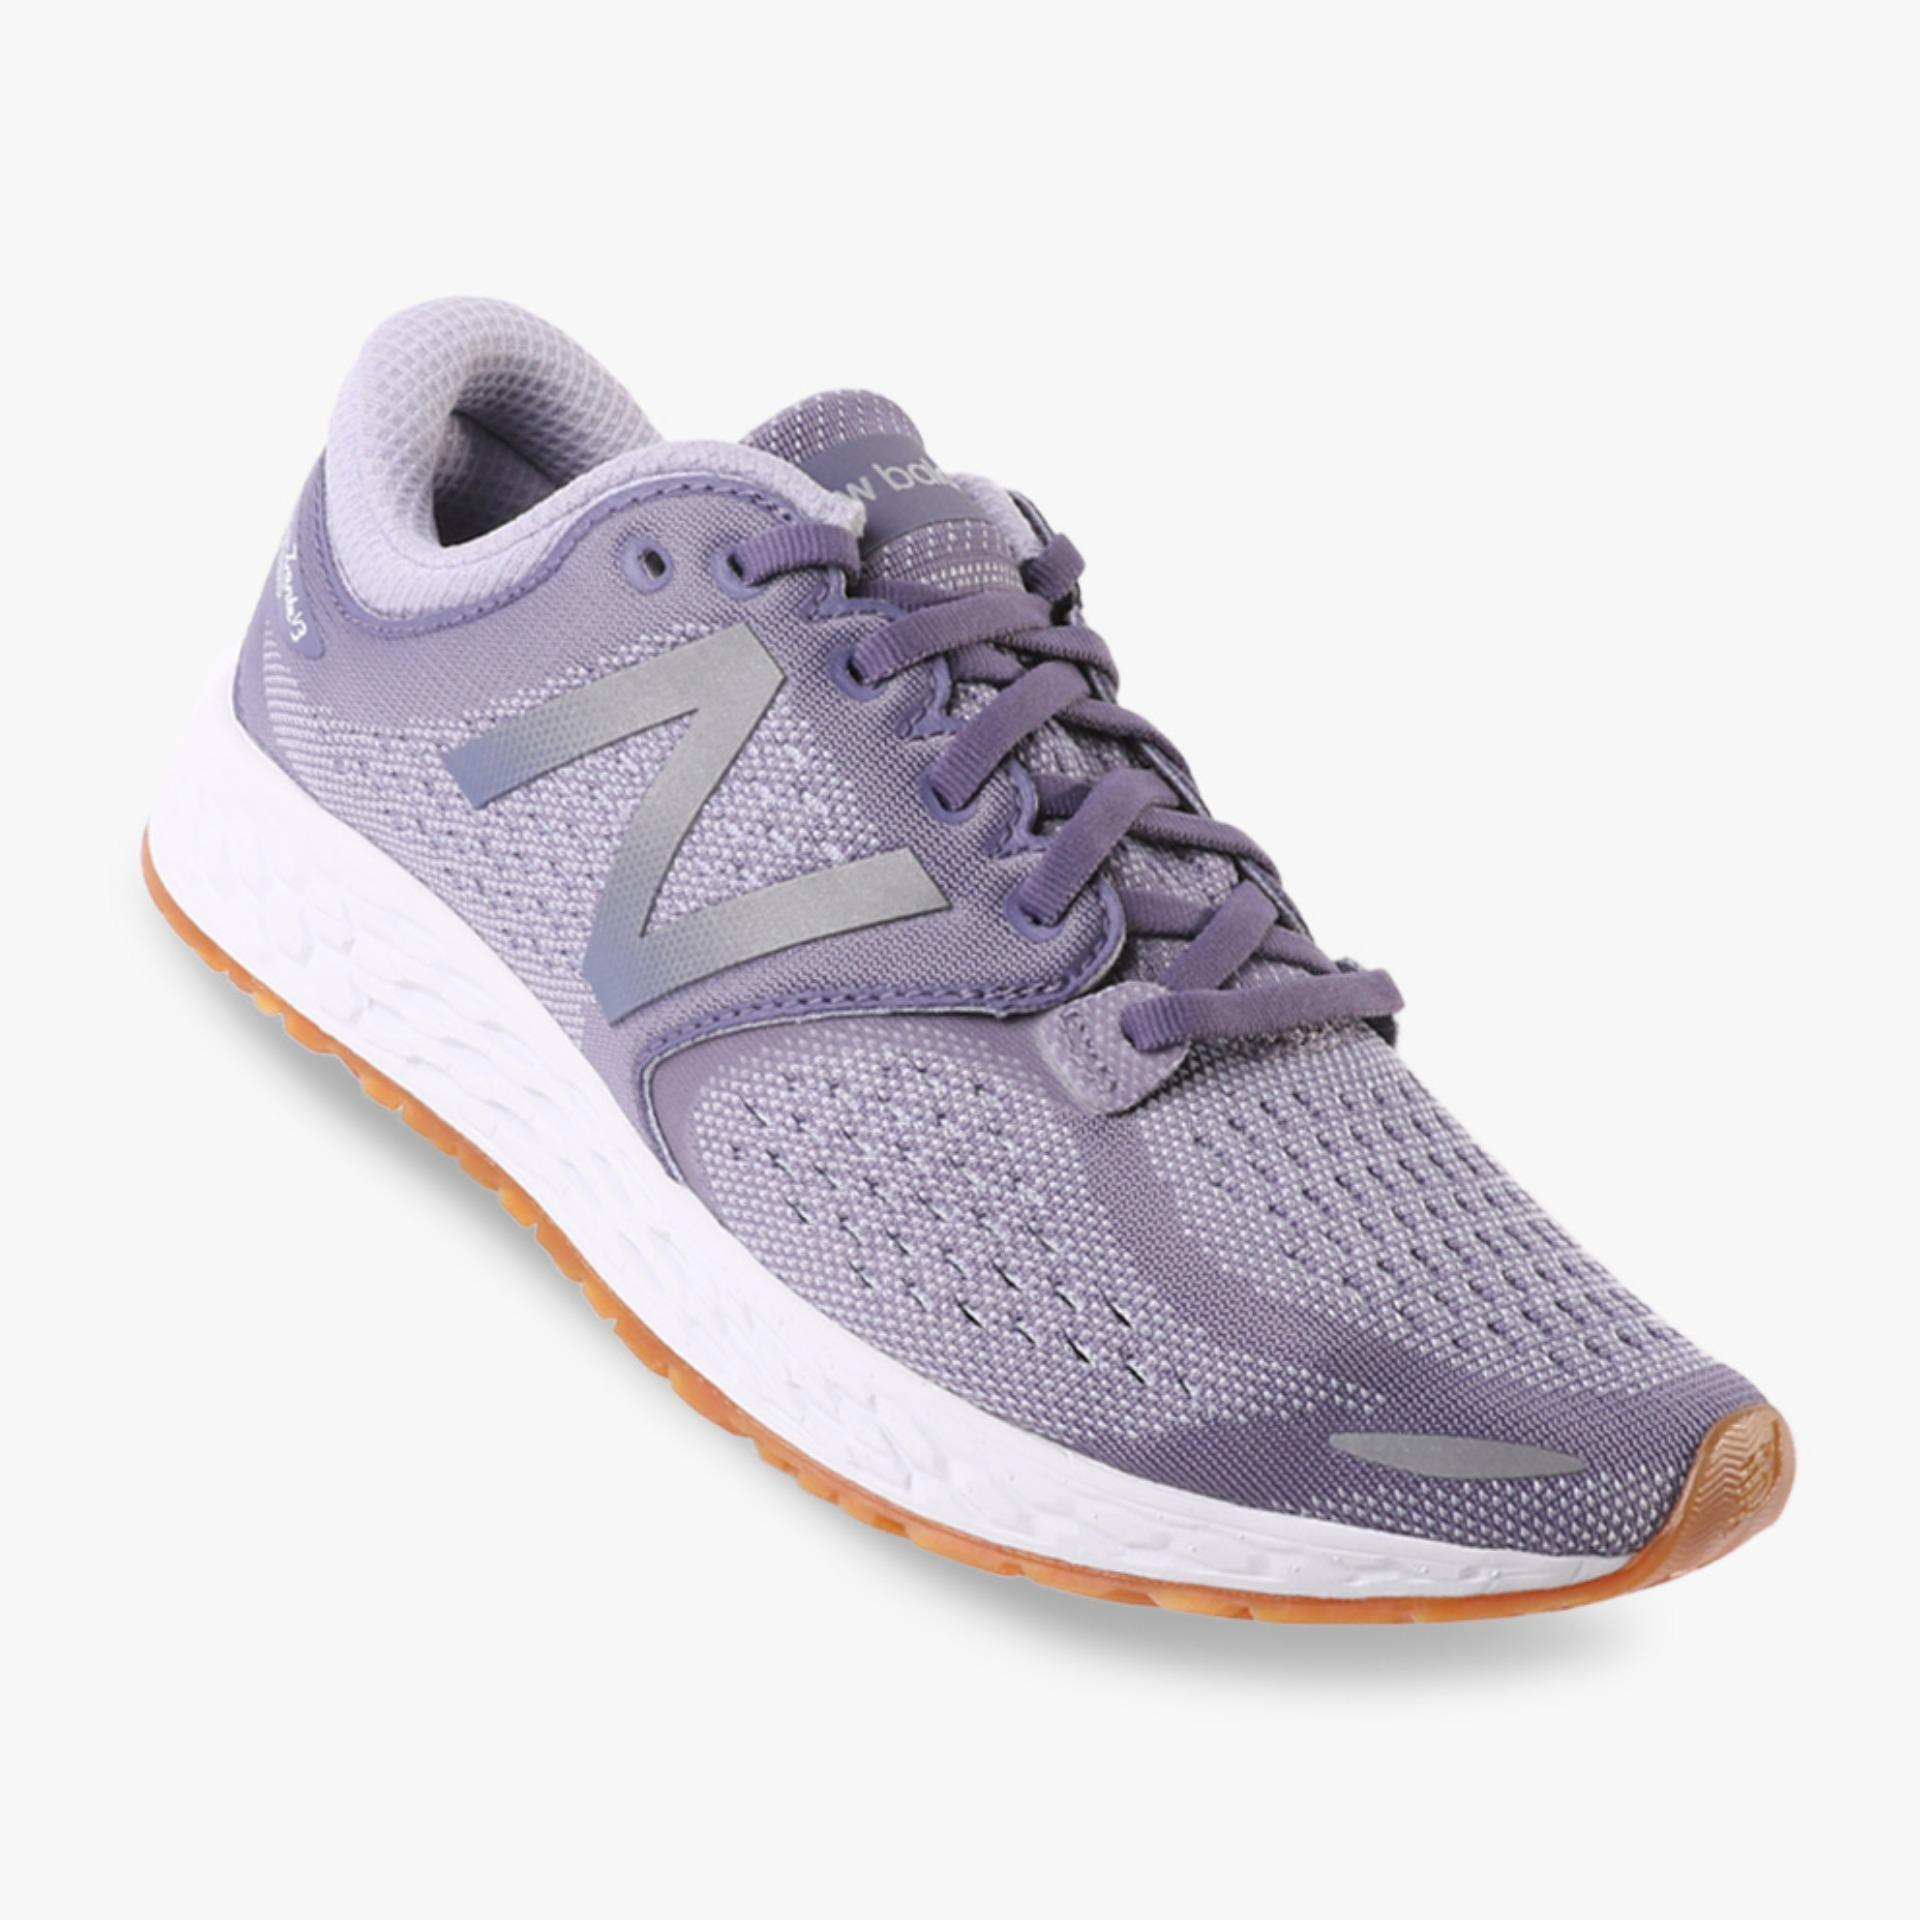 Penawaran Istimewa New Balance Fresh Foam Zante Breathe Pack Women S Running Shoes Ungu Terbaru